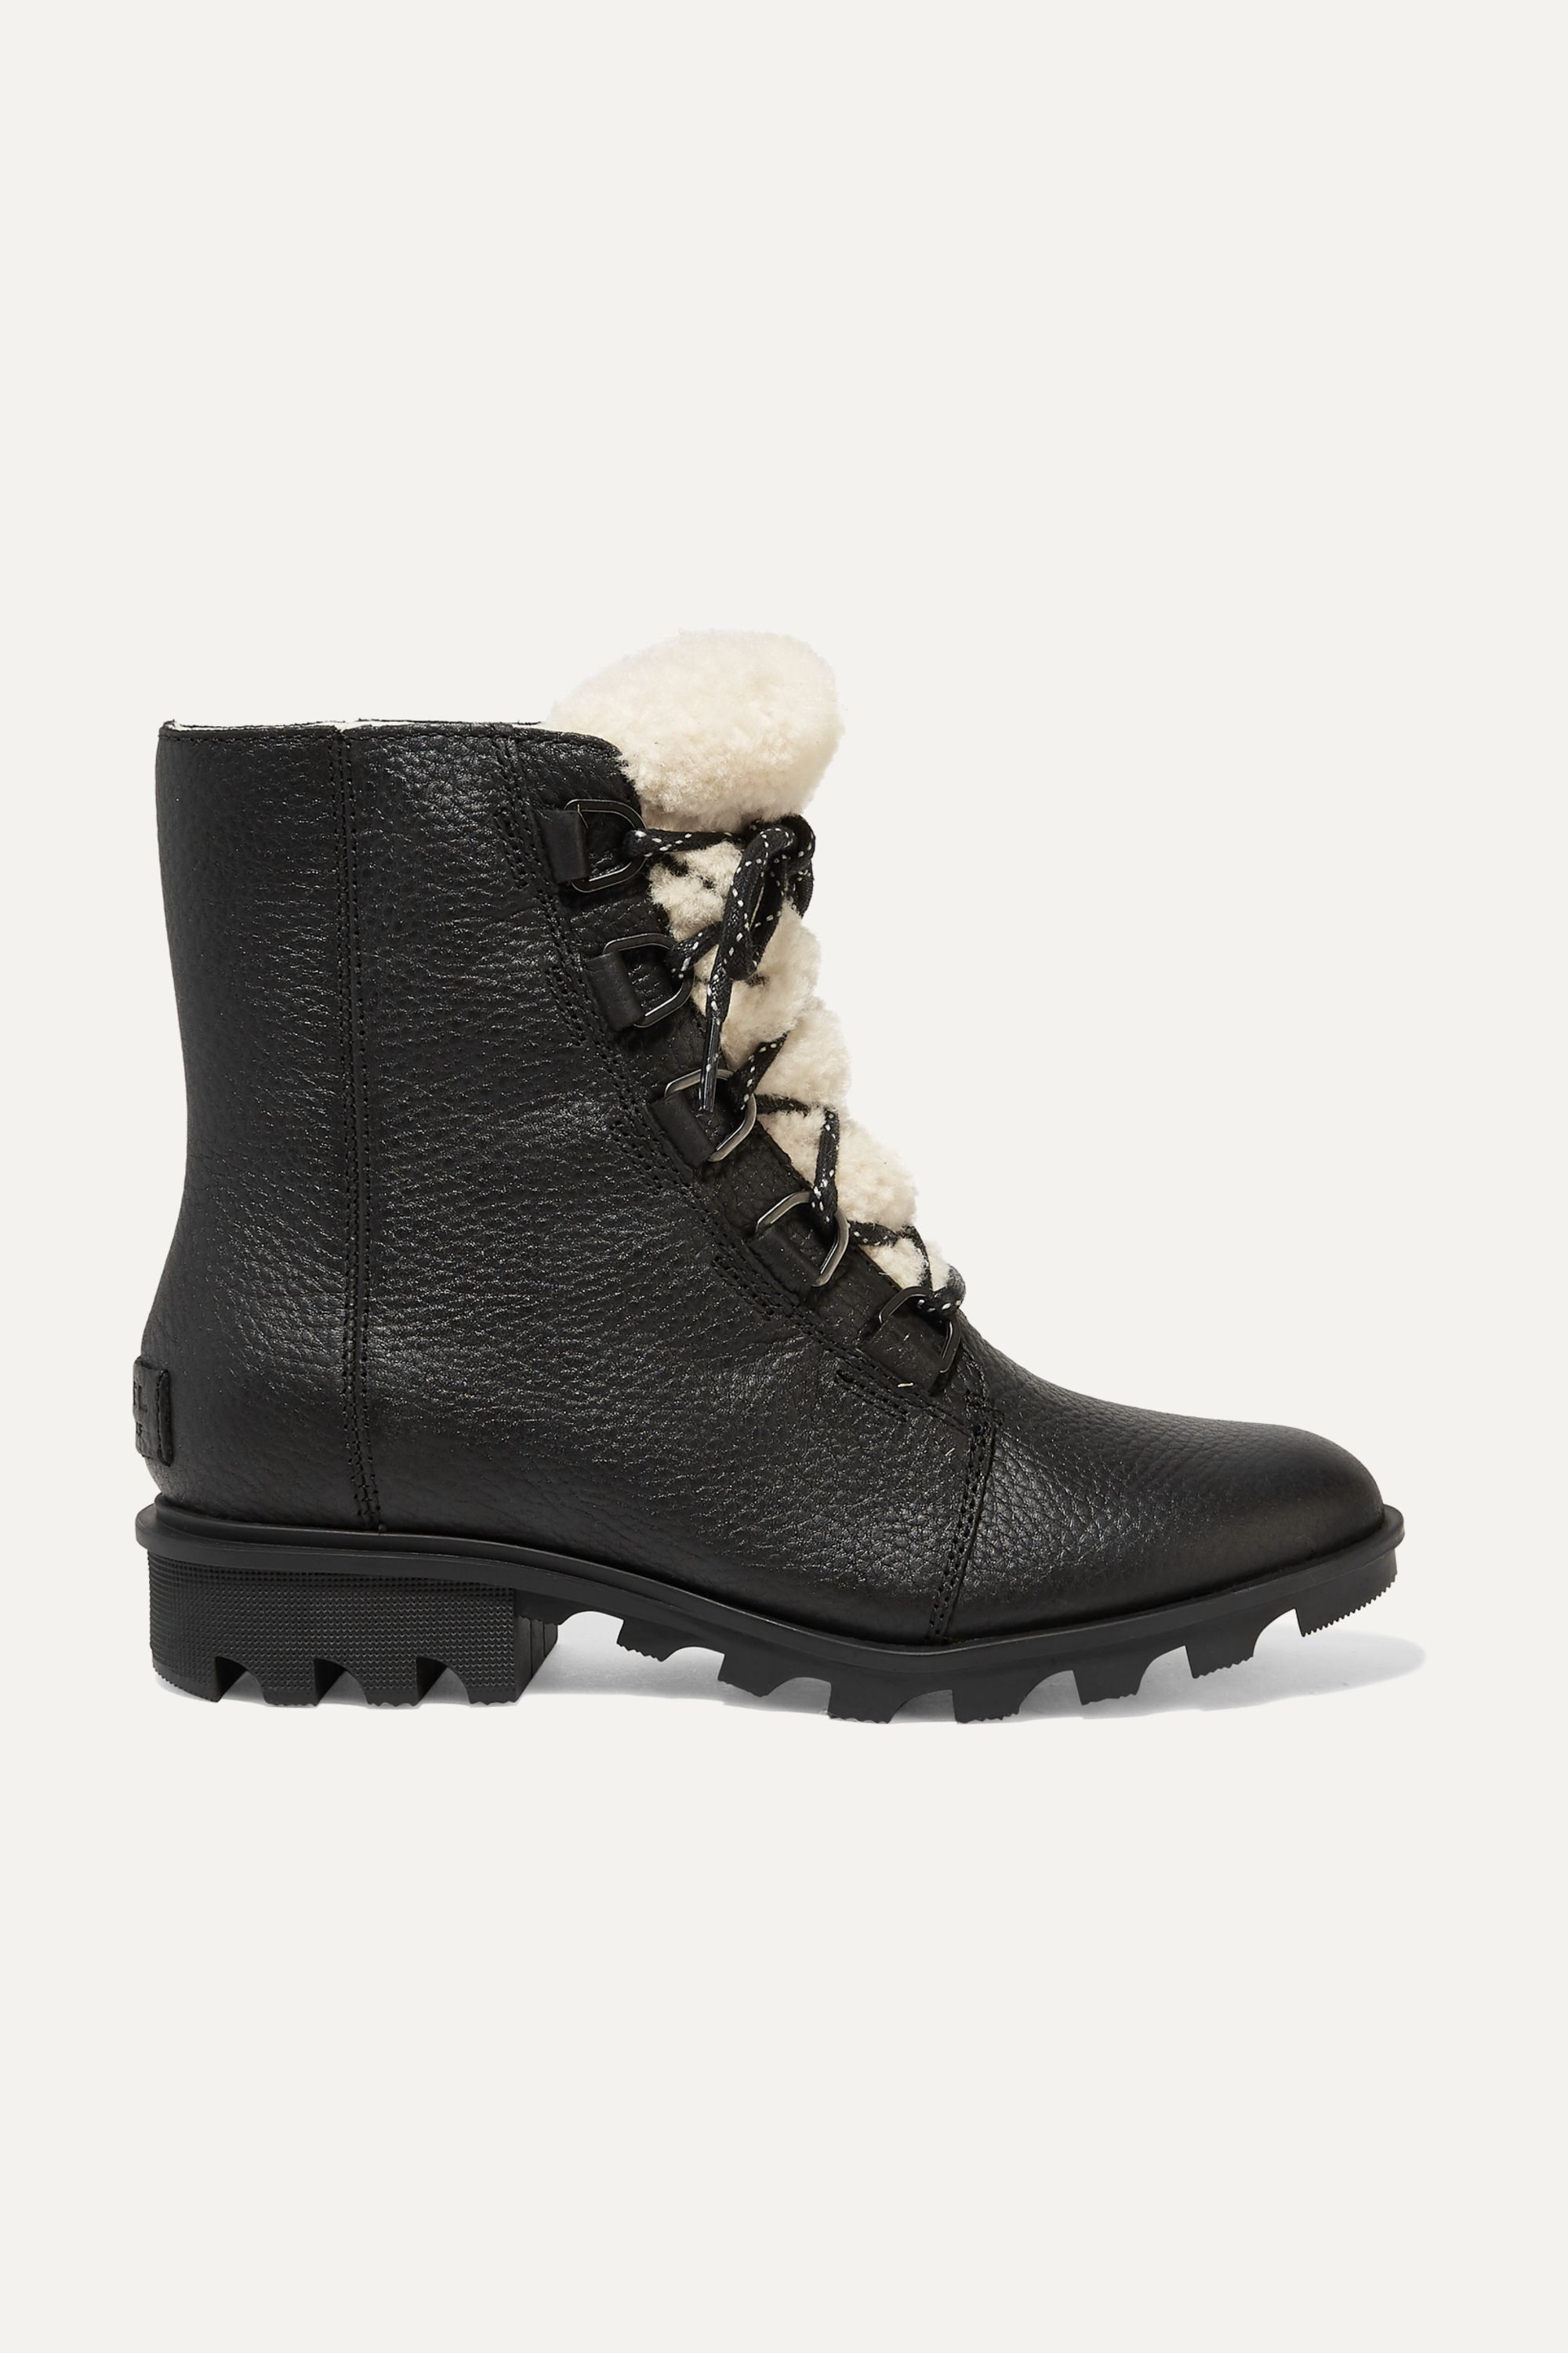 Sorel Phoenix shearling-trimmed waterproof textured-leather ankle boots